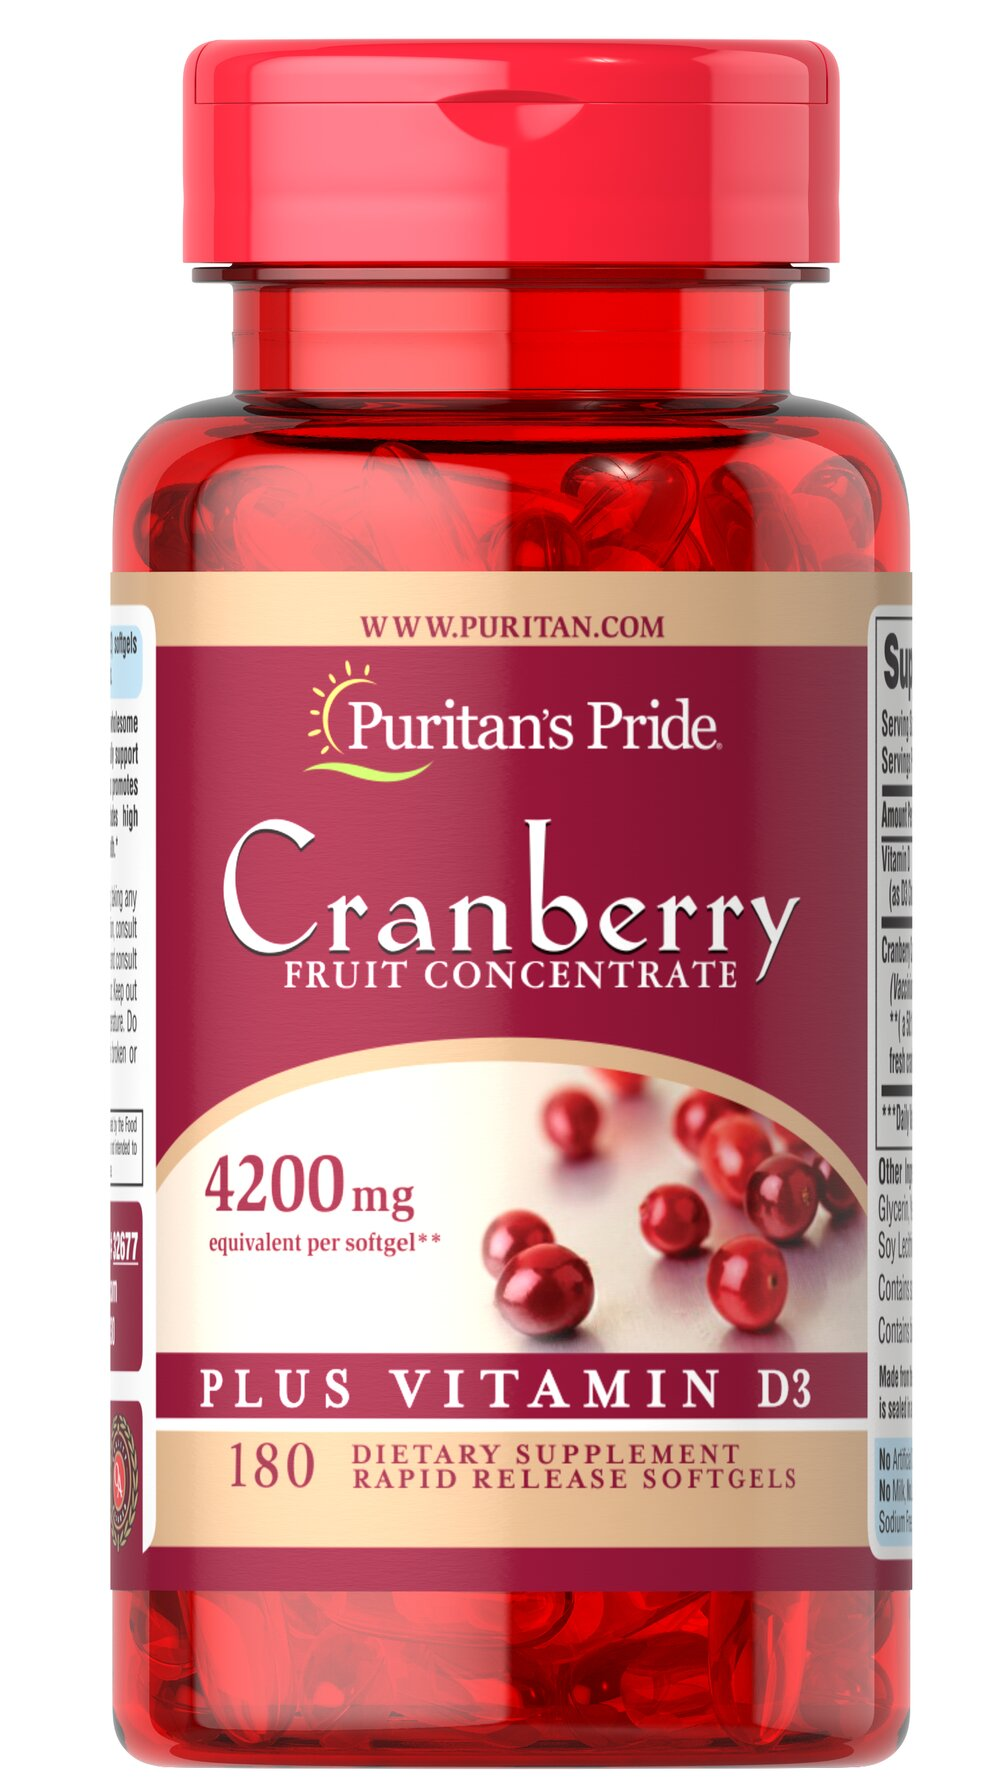 Cranberry Fruit Concentrate Plus Vitamin D3  180 Softgels  $19.99